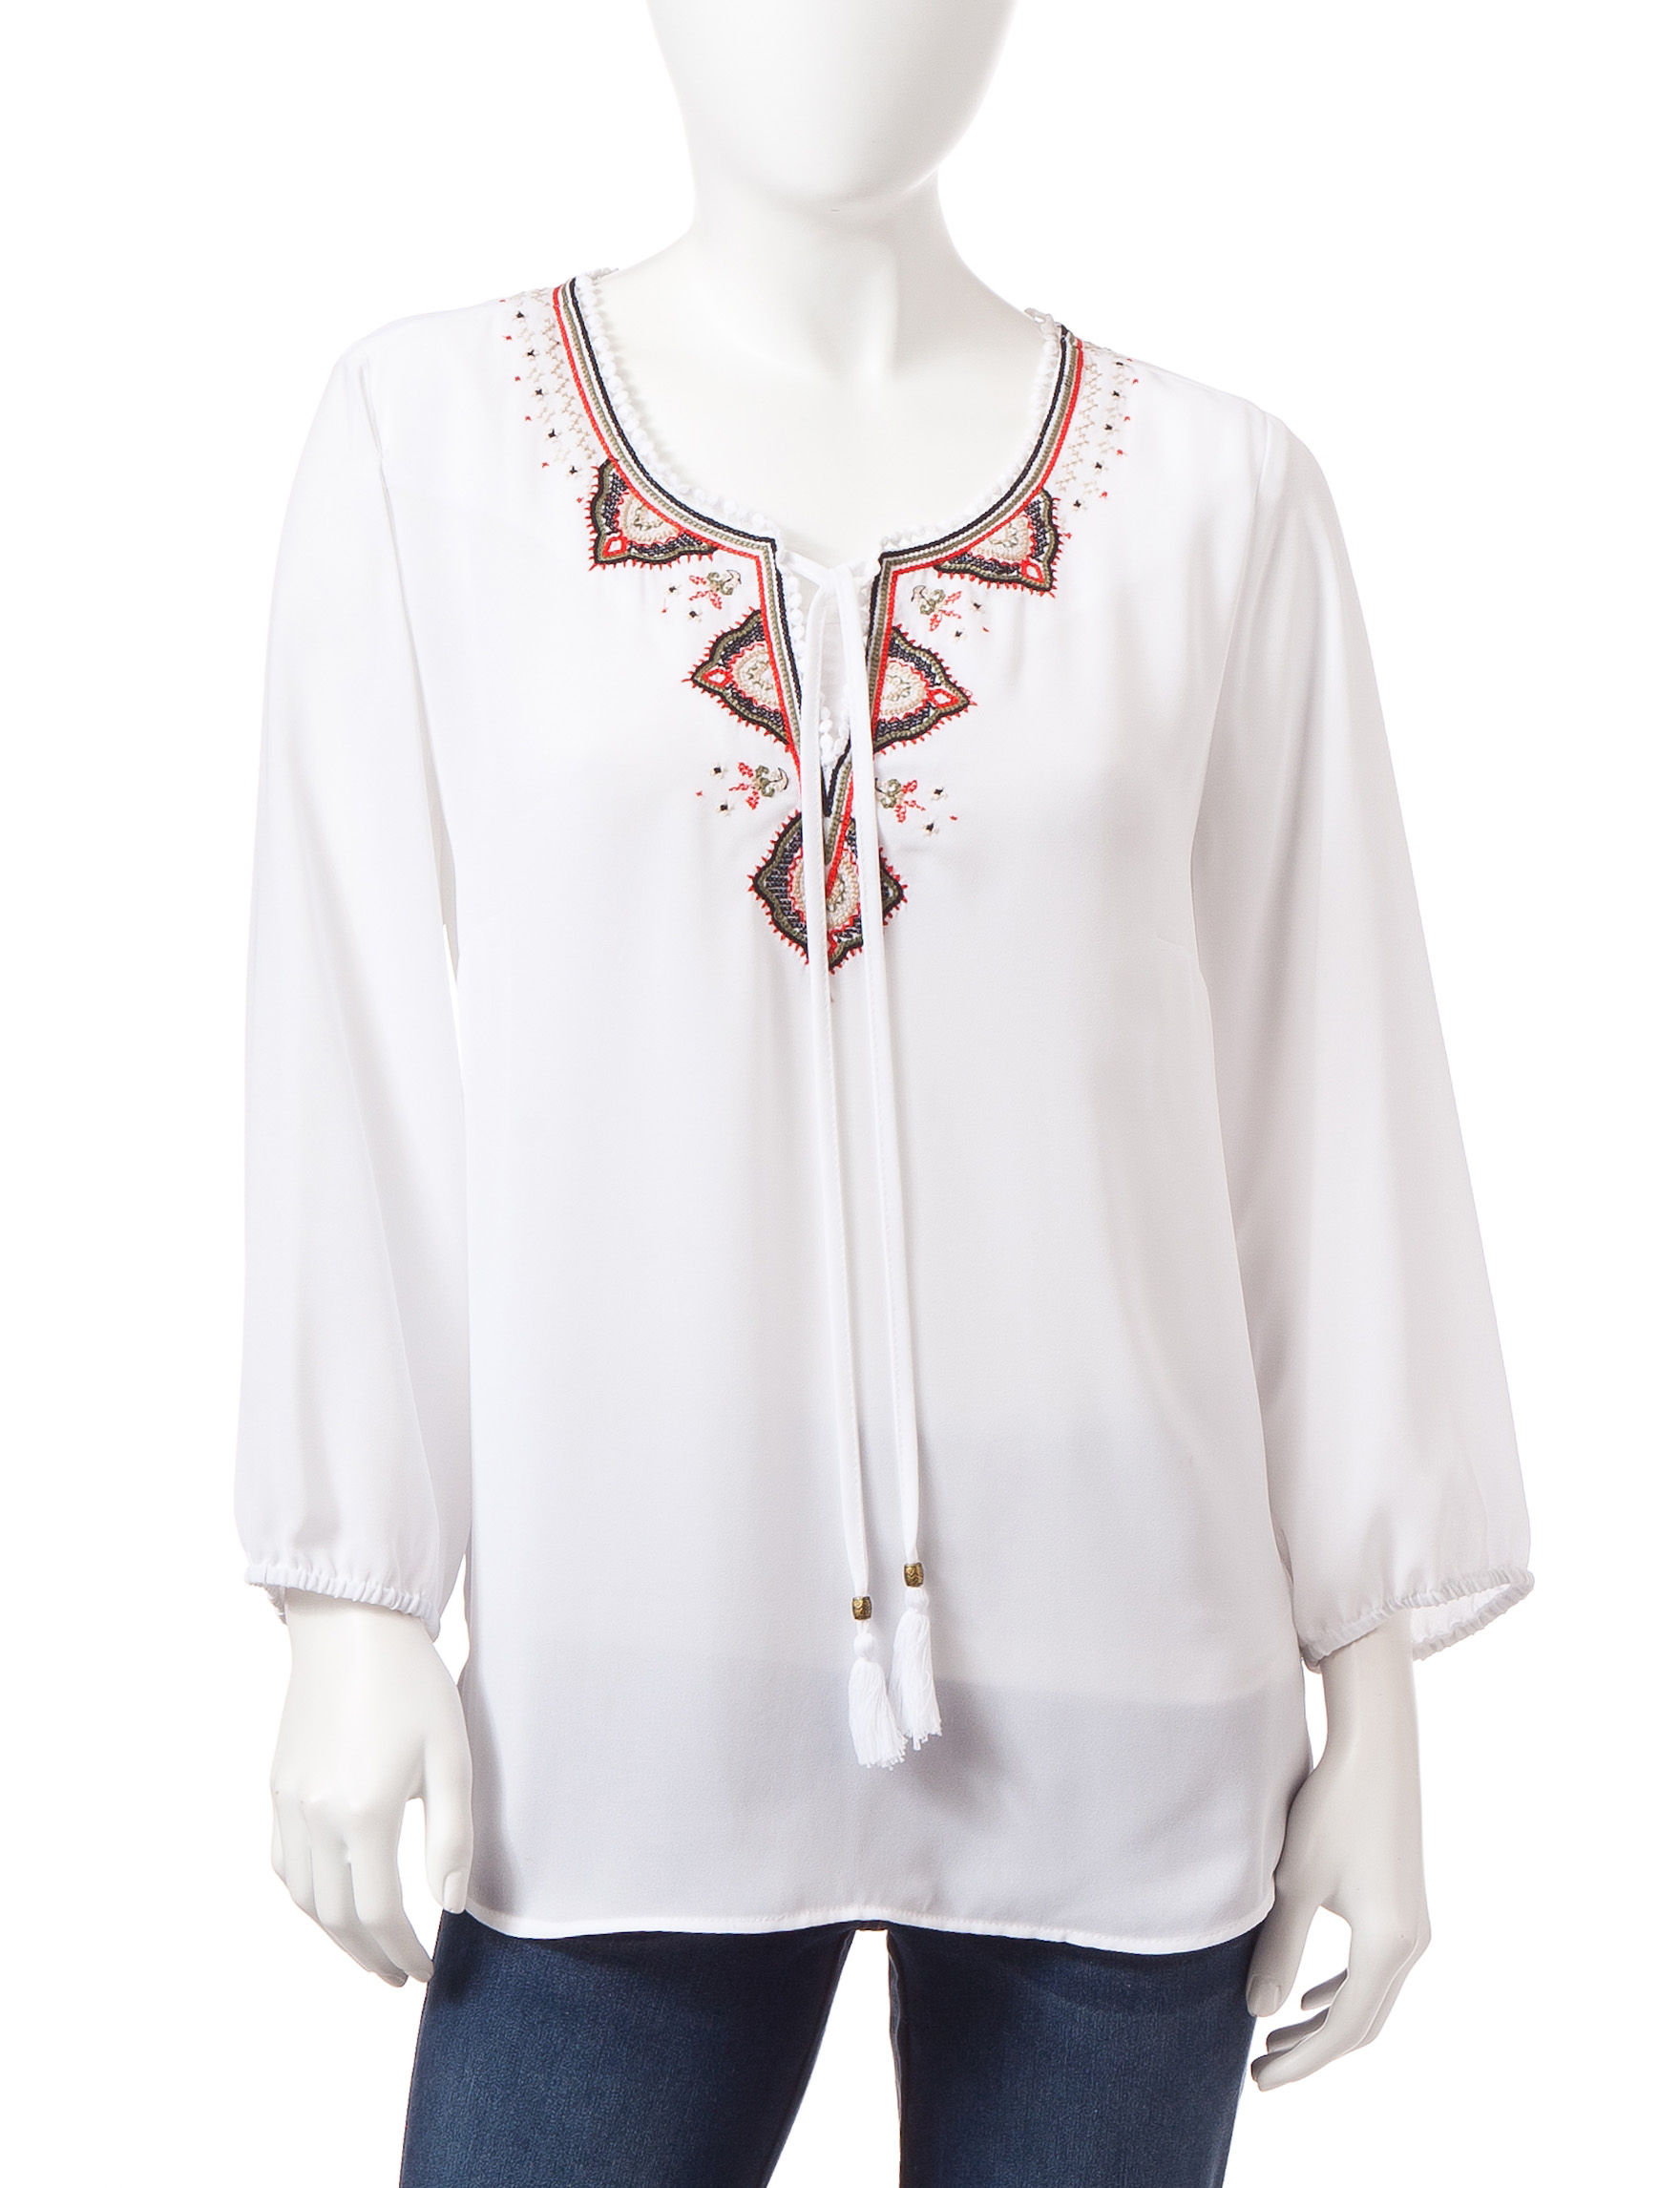 Signature Studio White Shirts & Blouses